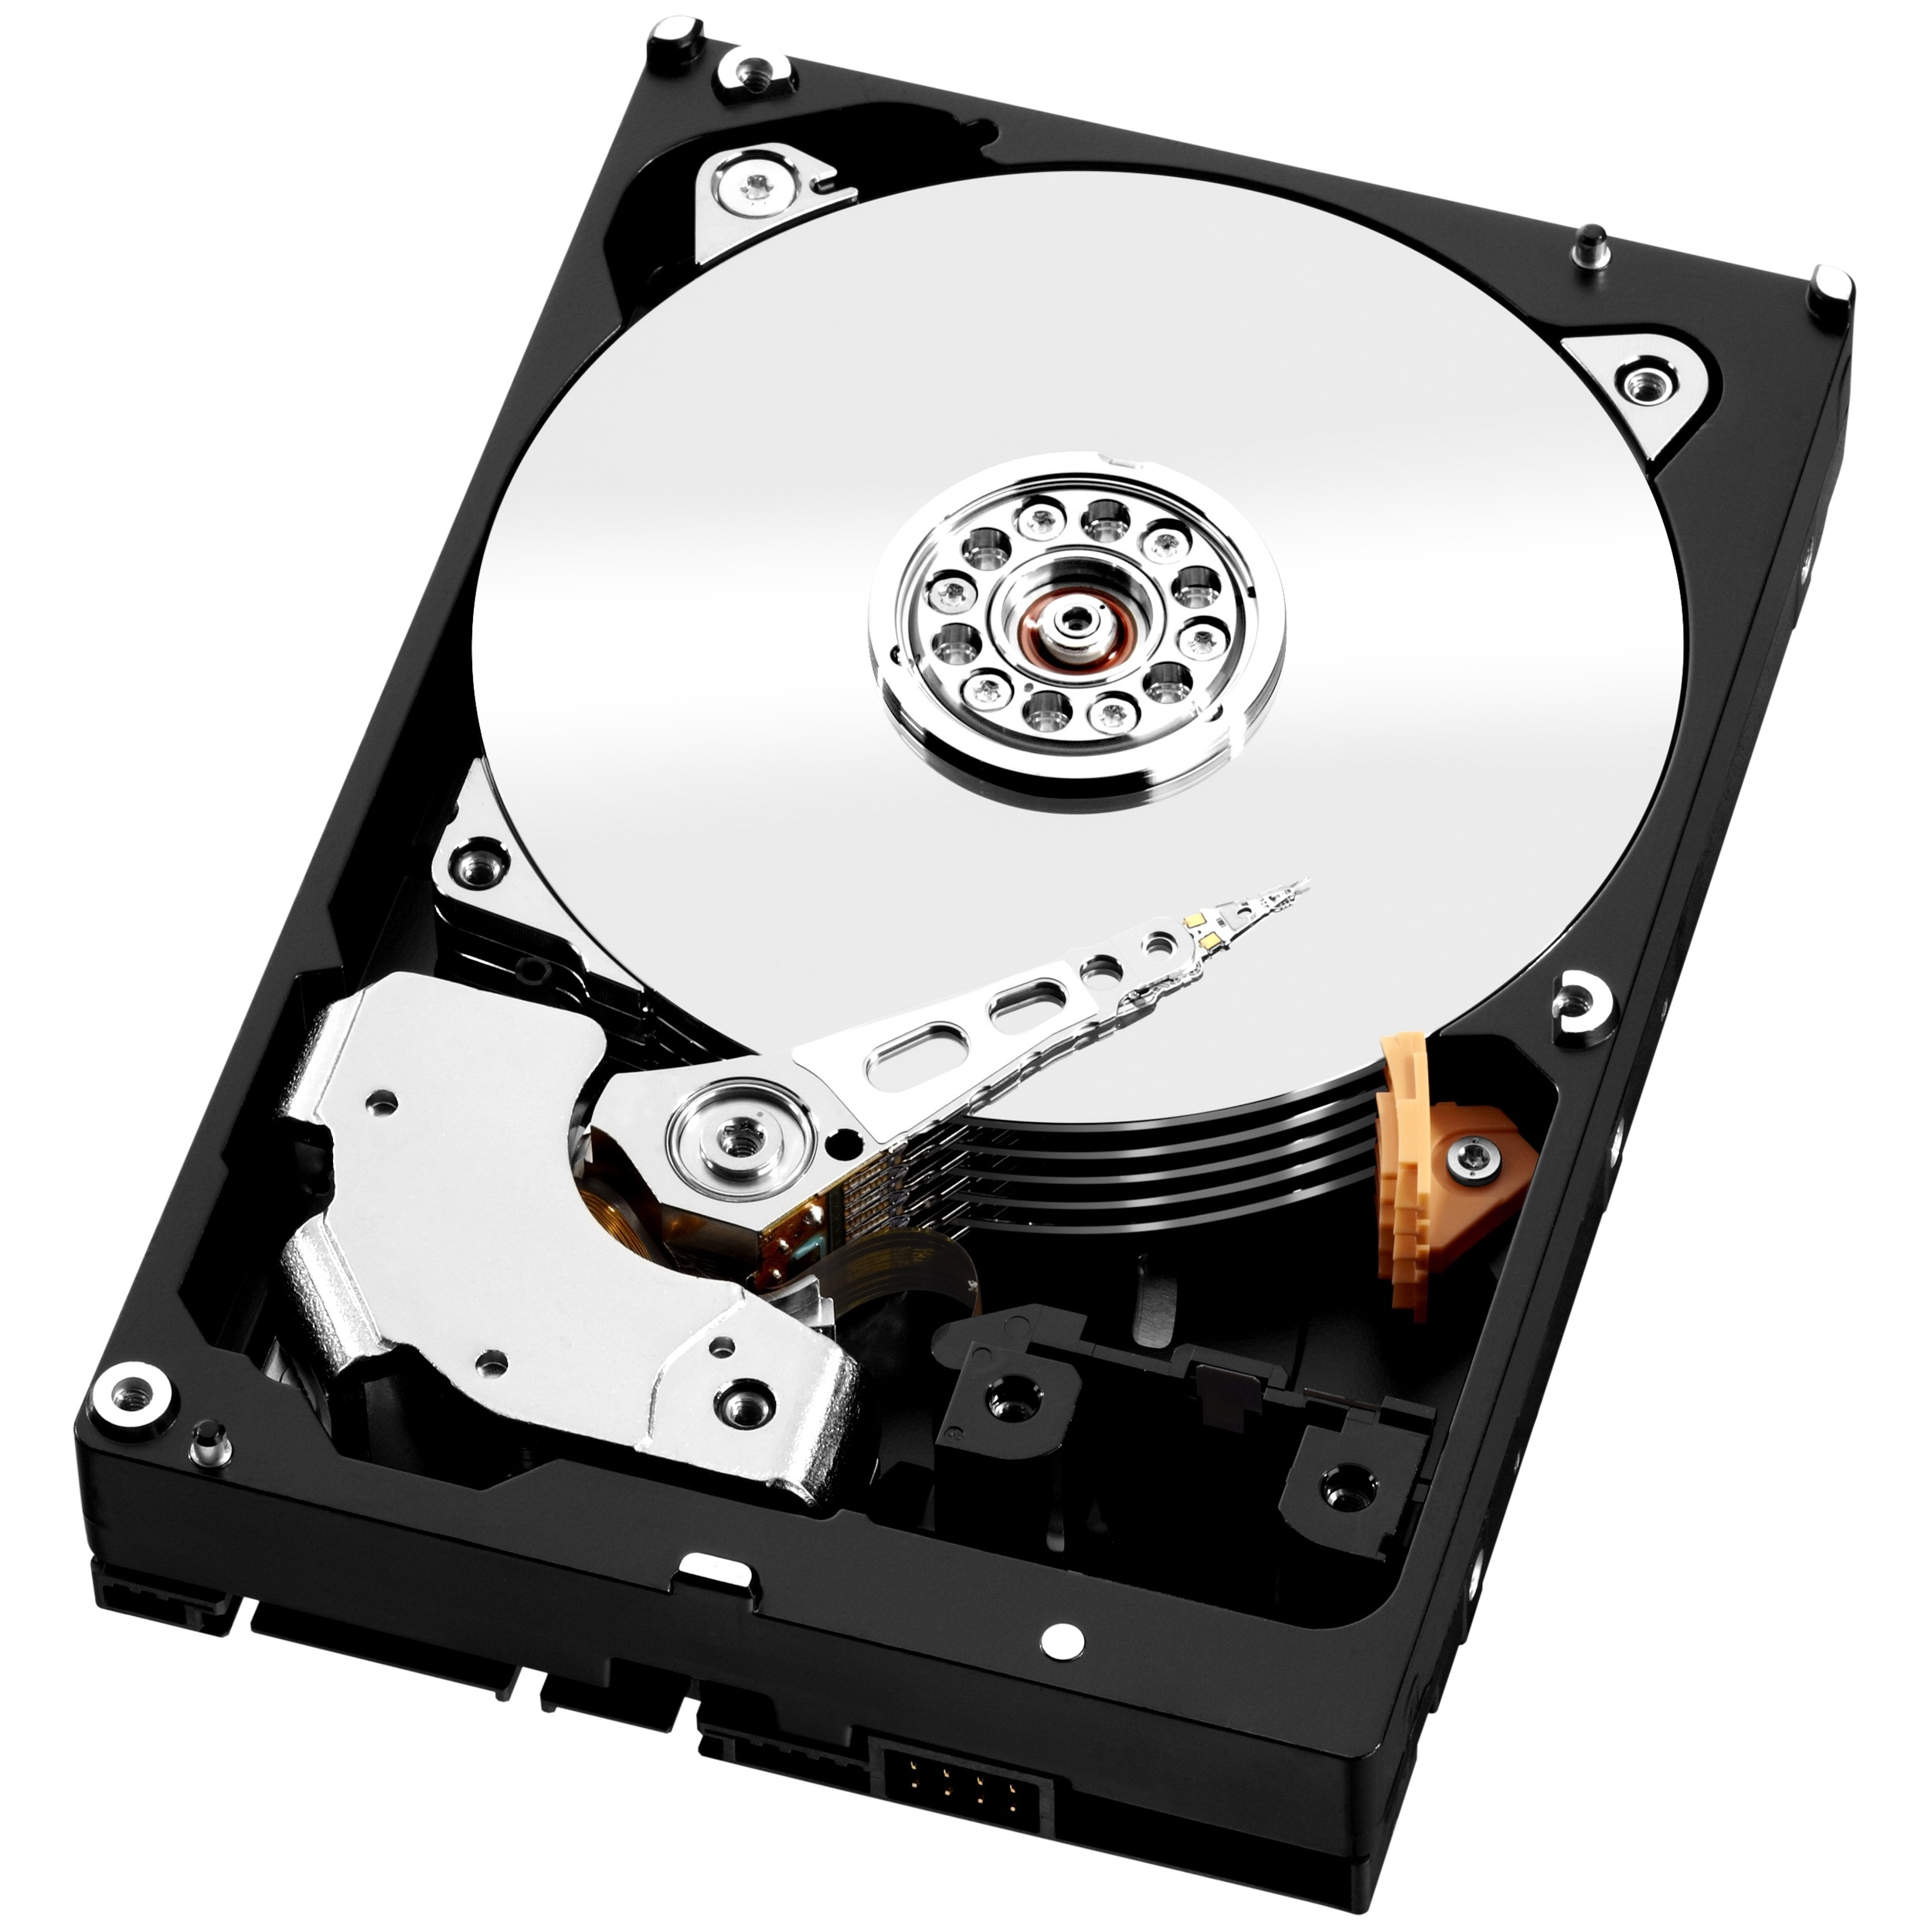 "Wd Red Pro Wd2001ffsx 2 Tb 3.5"" Internal Hard Drive Sata 7200 Rpm 64 Mb Buffer (wd2001ffsx) by Western Digital"